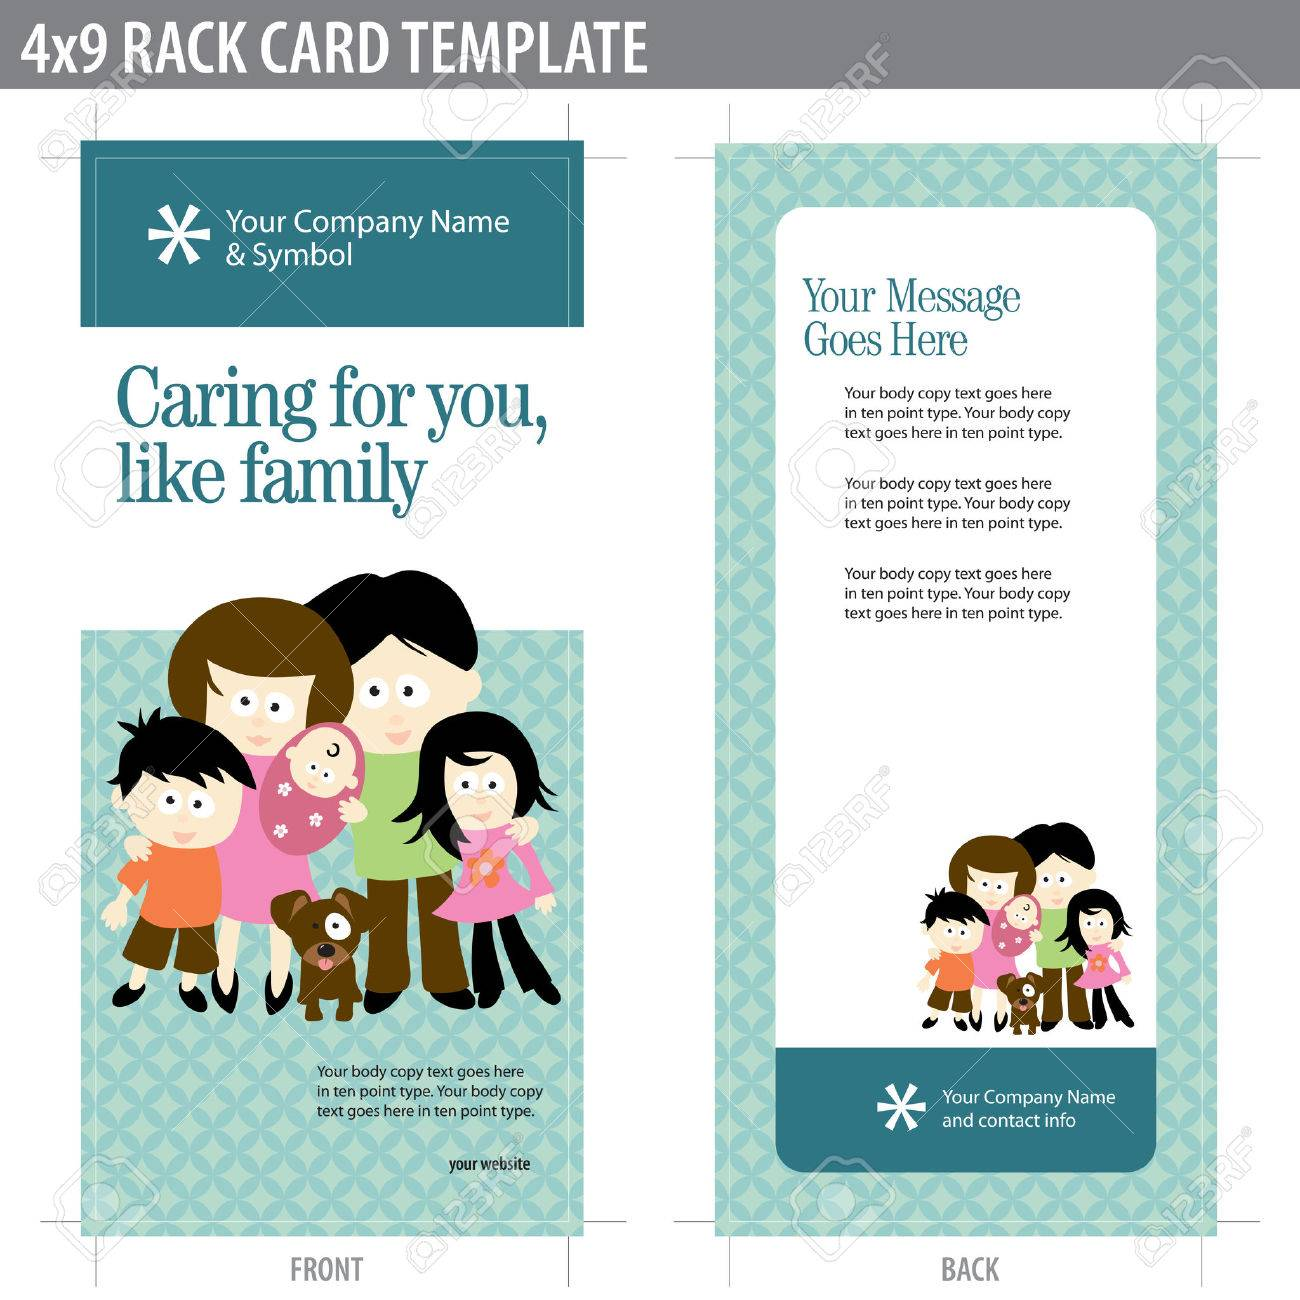 4x9 two sided rack card brochure includes crop marks.html